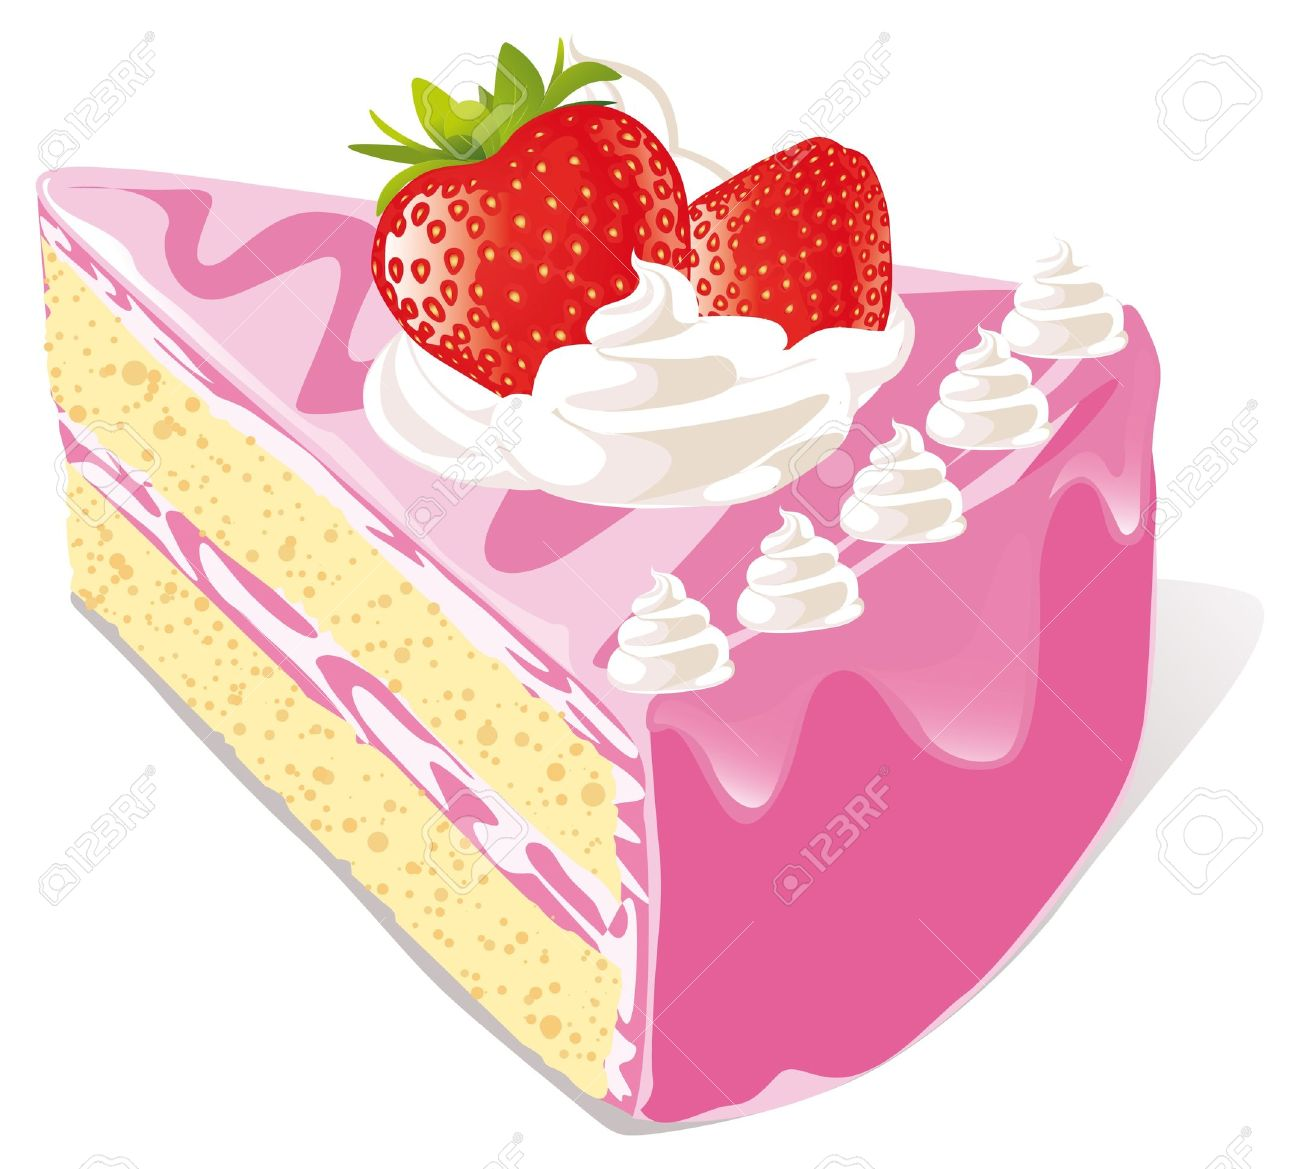 piece of cake: strawberry cake-piece of cake: strawberry cake-18